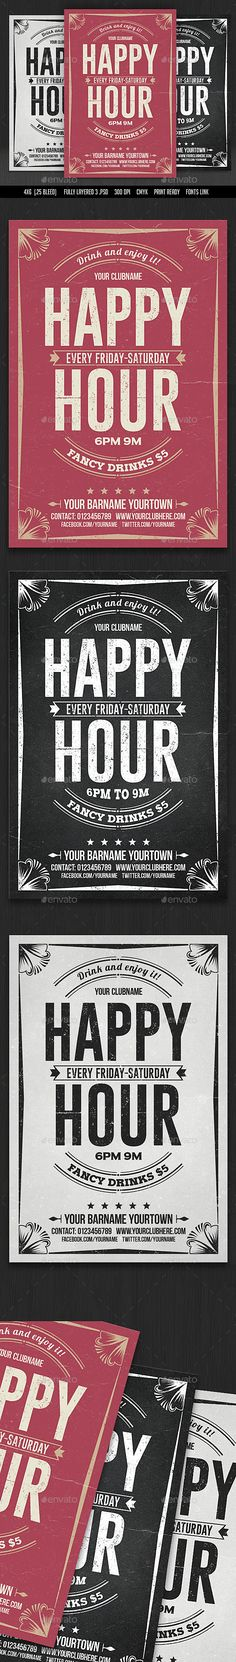 Happy Hour Flyer — Photoshop PSD #print #chalkboard flyer • Available here → https://graphicriver.net/item/happy-hour-flyer/16384697?ref=pxcr